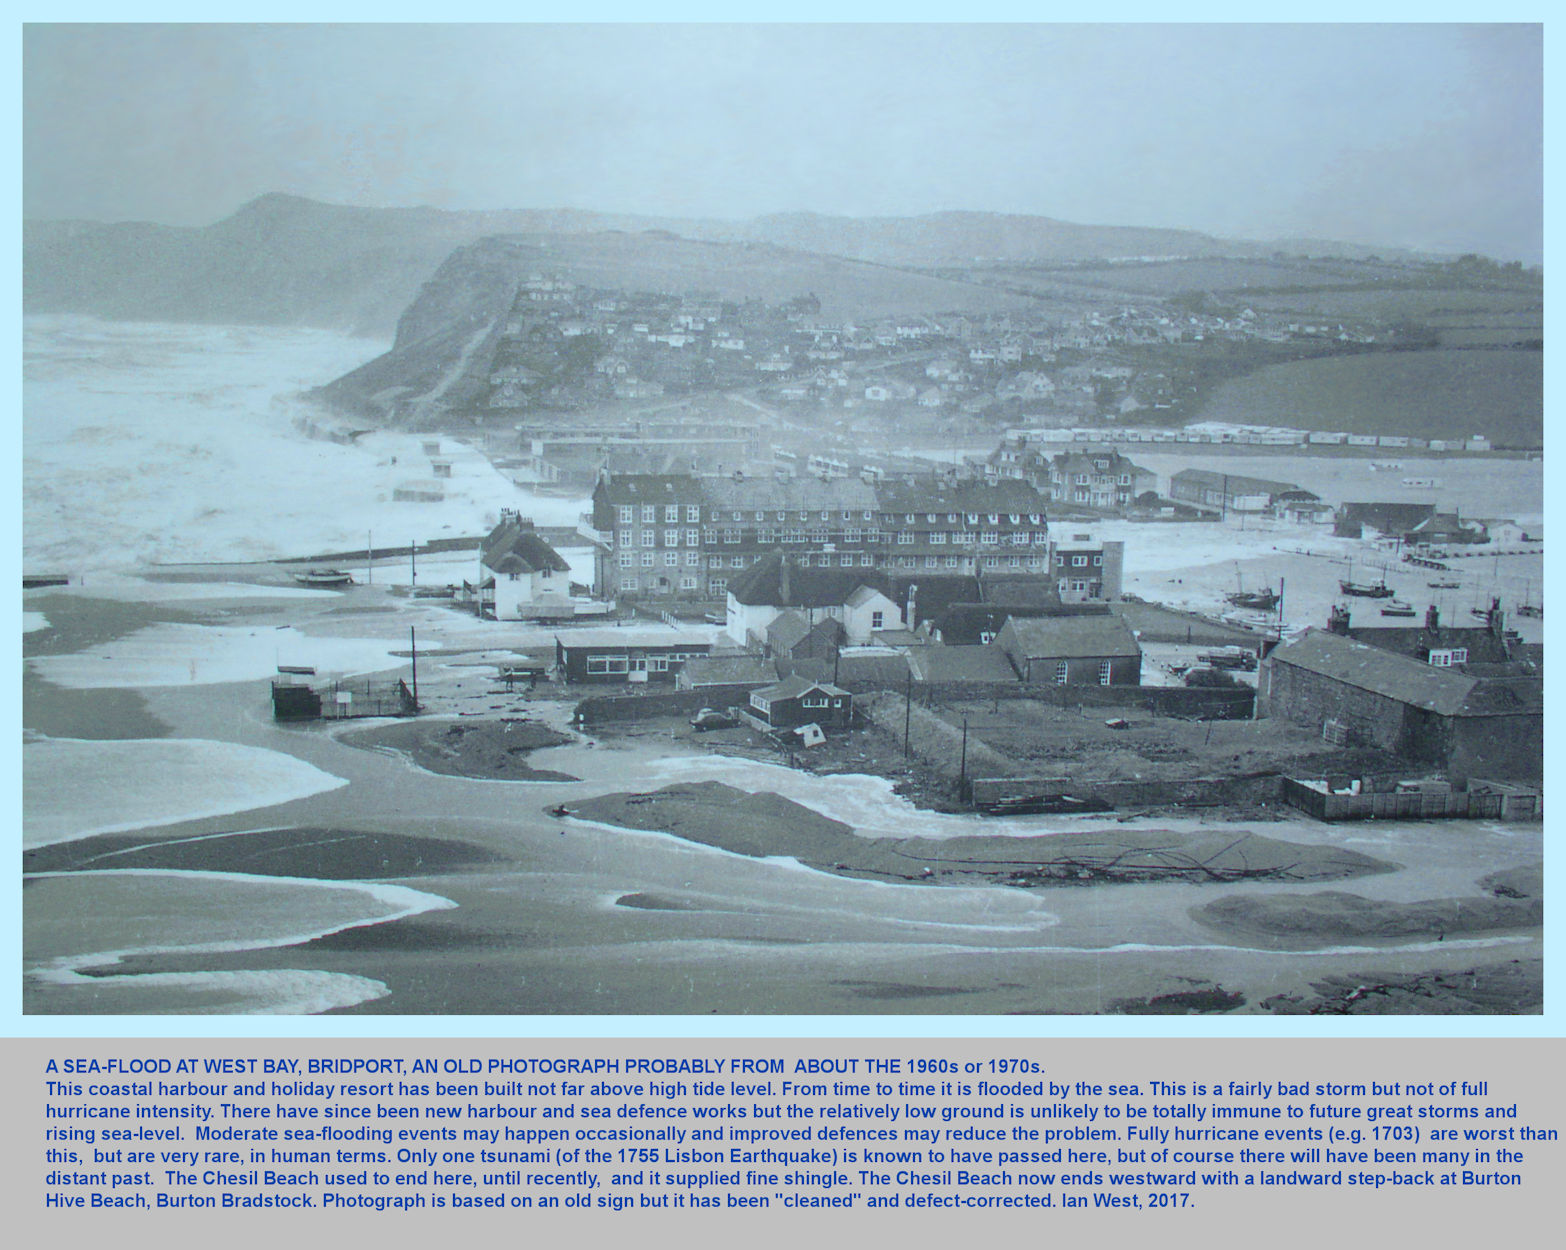 West Bay, Bridport, Dorset, some years ago, on the occasion of a major storm and sea flood